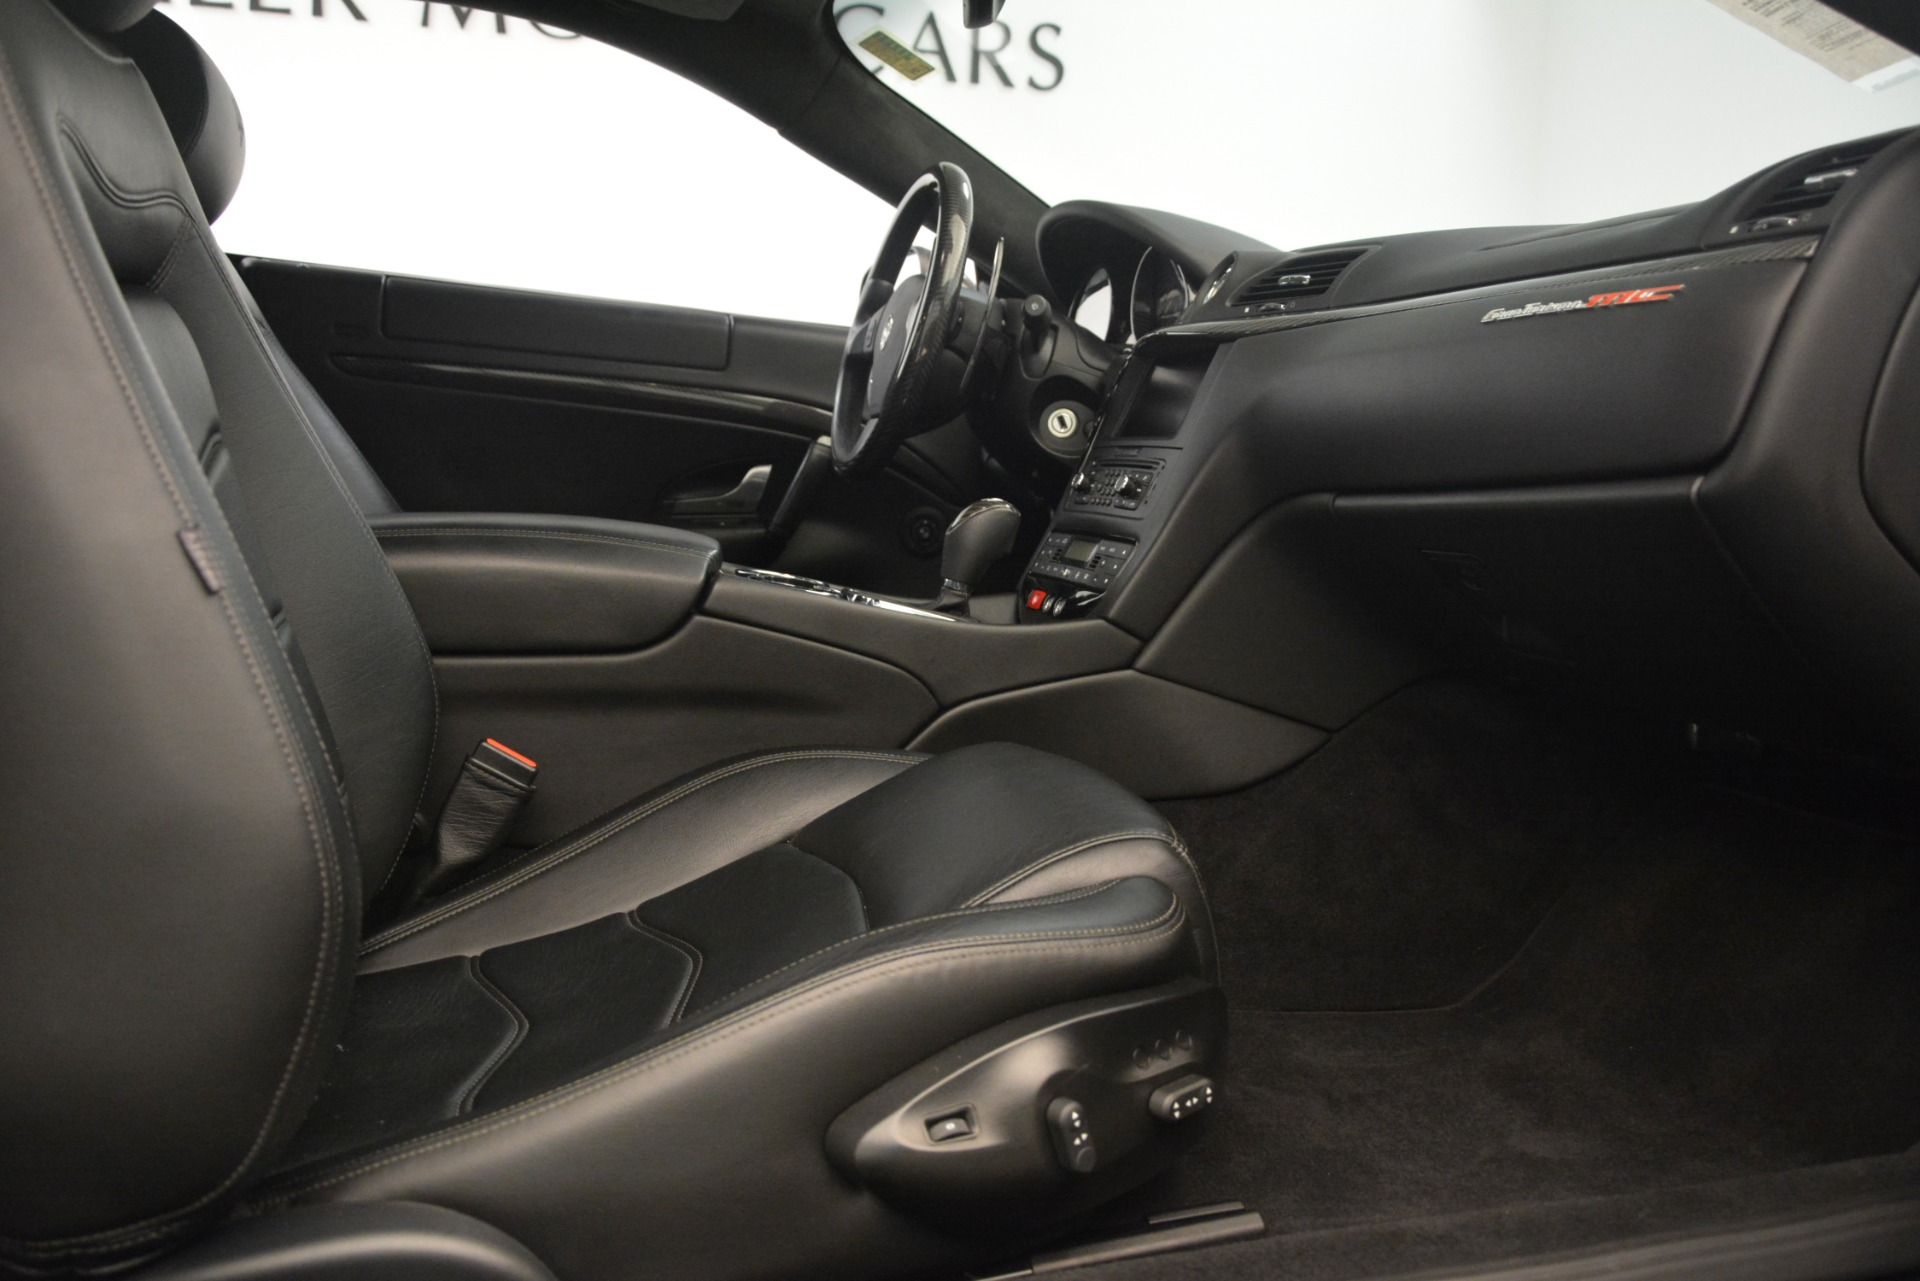 Used 2012 Maserati GranTurismo MC For Sale In Westport, CT 1284_p21